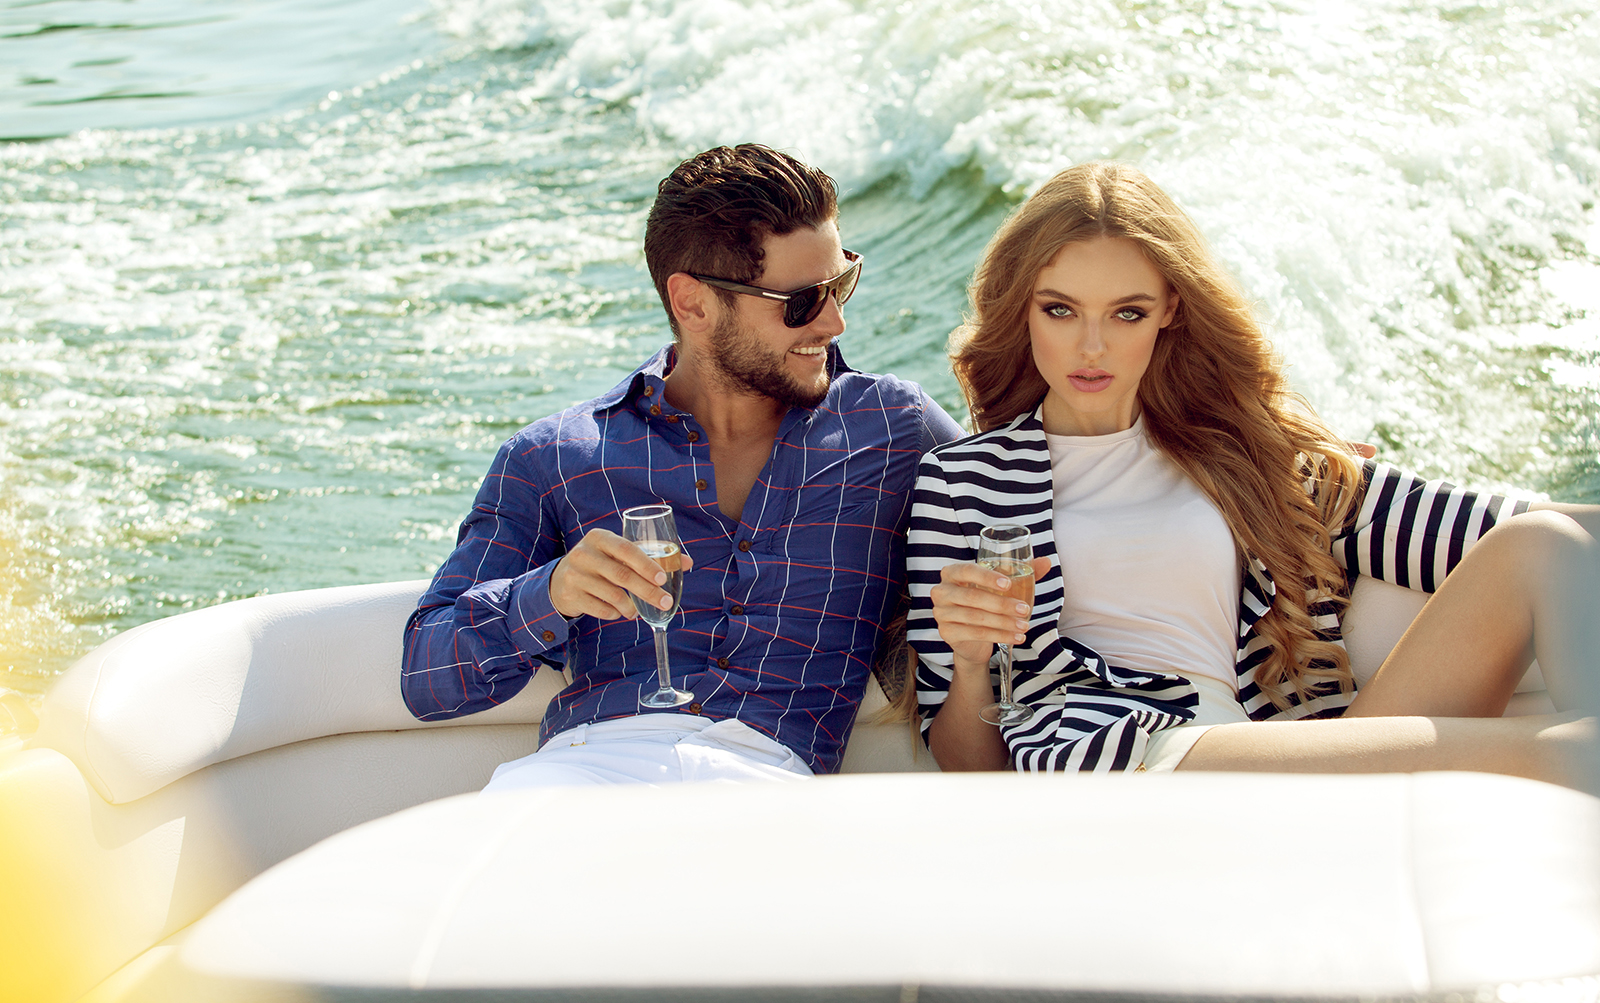 dress-layered-look-more-expensie-couple-on-boat